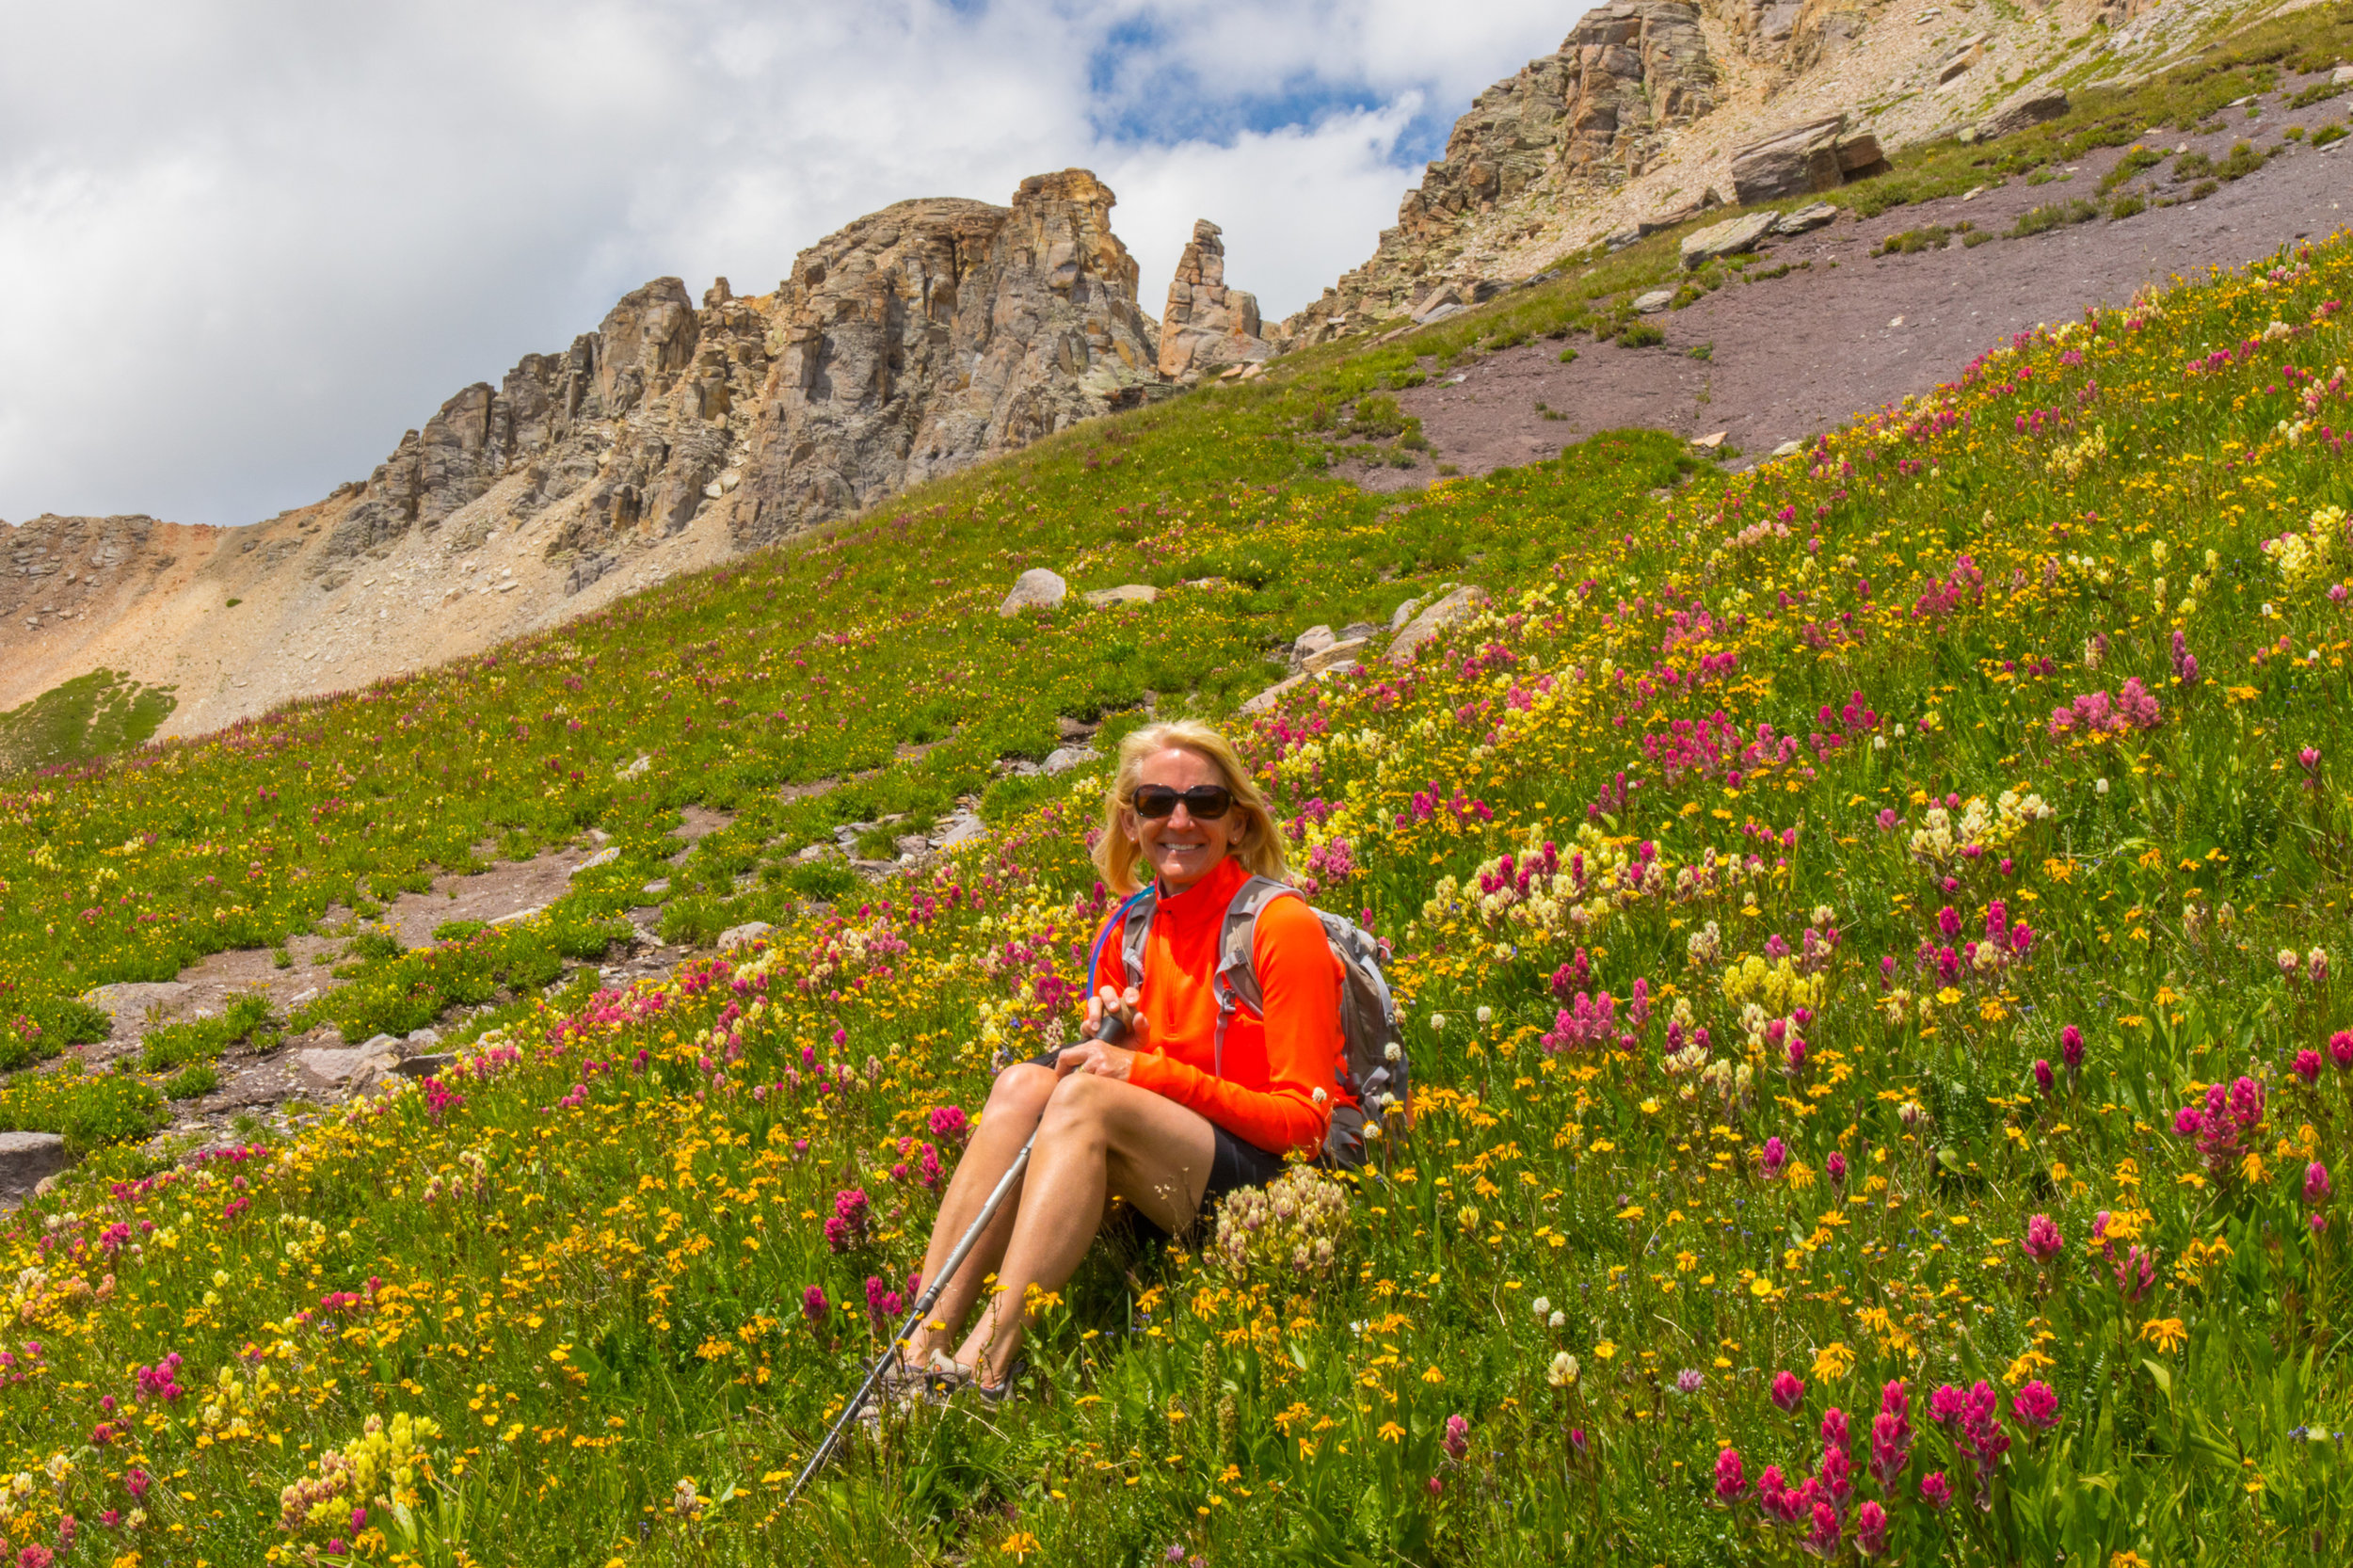 My favorite photo of Mary Peil in the Wildflowers